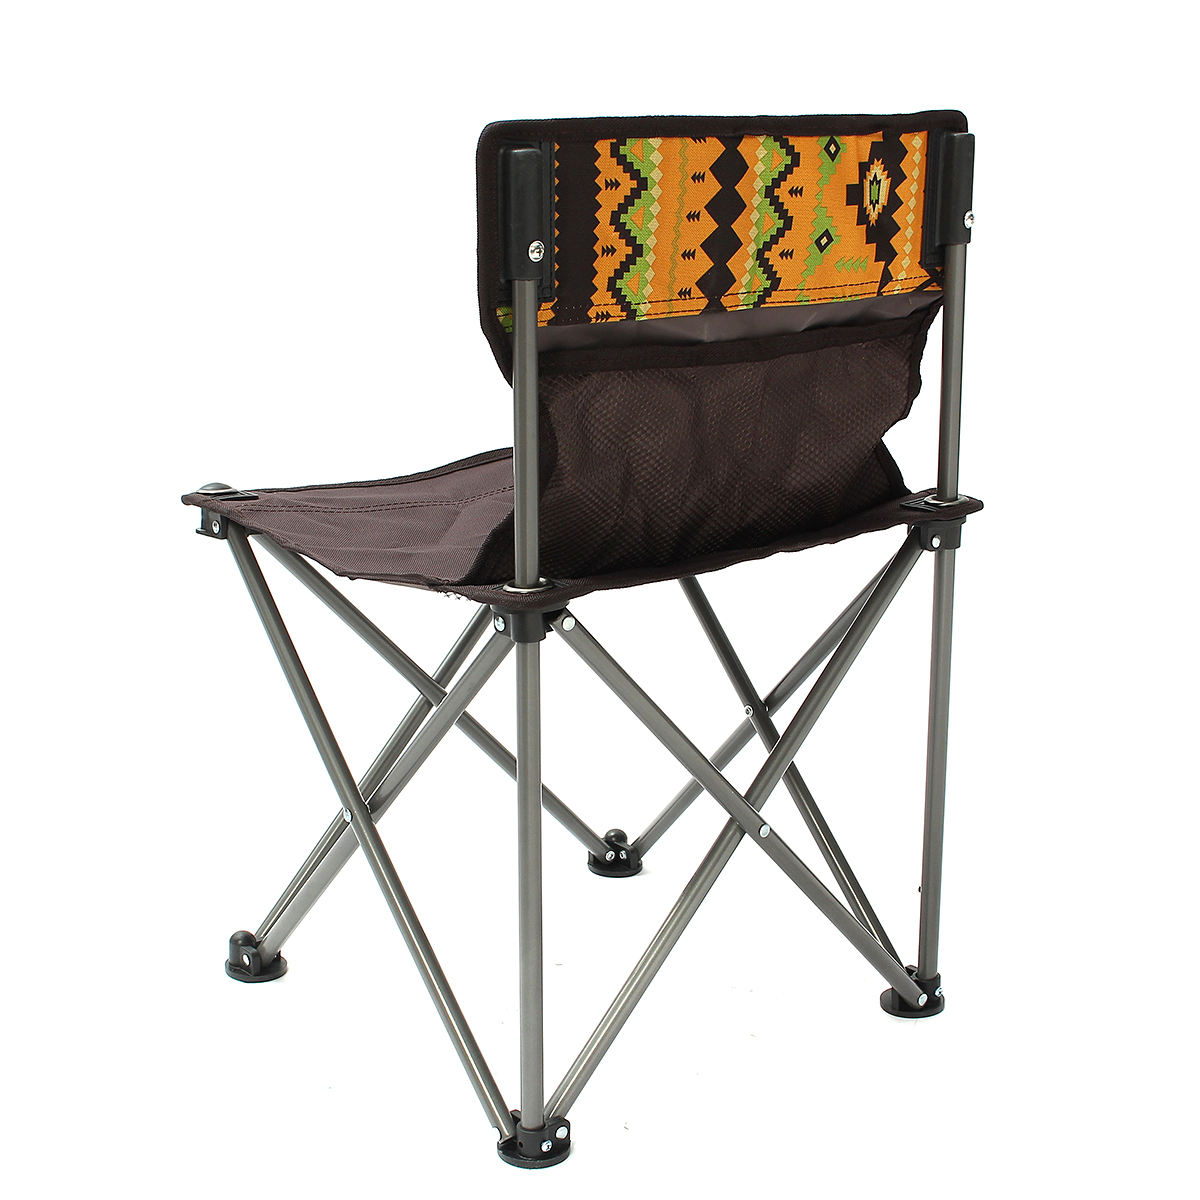 Portable Outdoor Kitchens: Outdoor Garden Portable Camping Picnic BBQ Hardware With